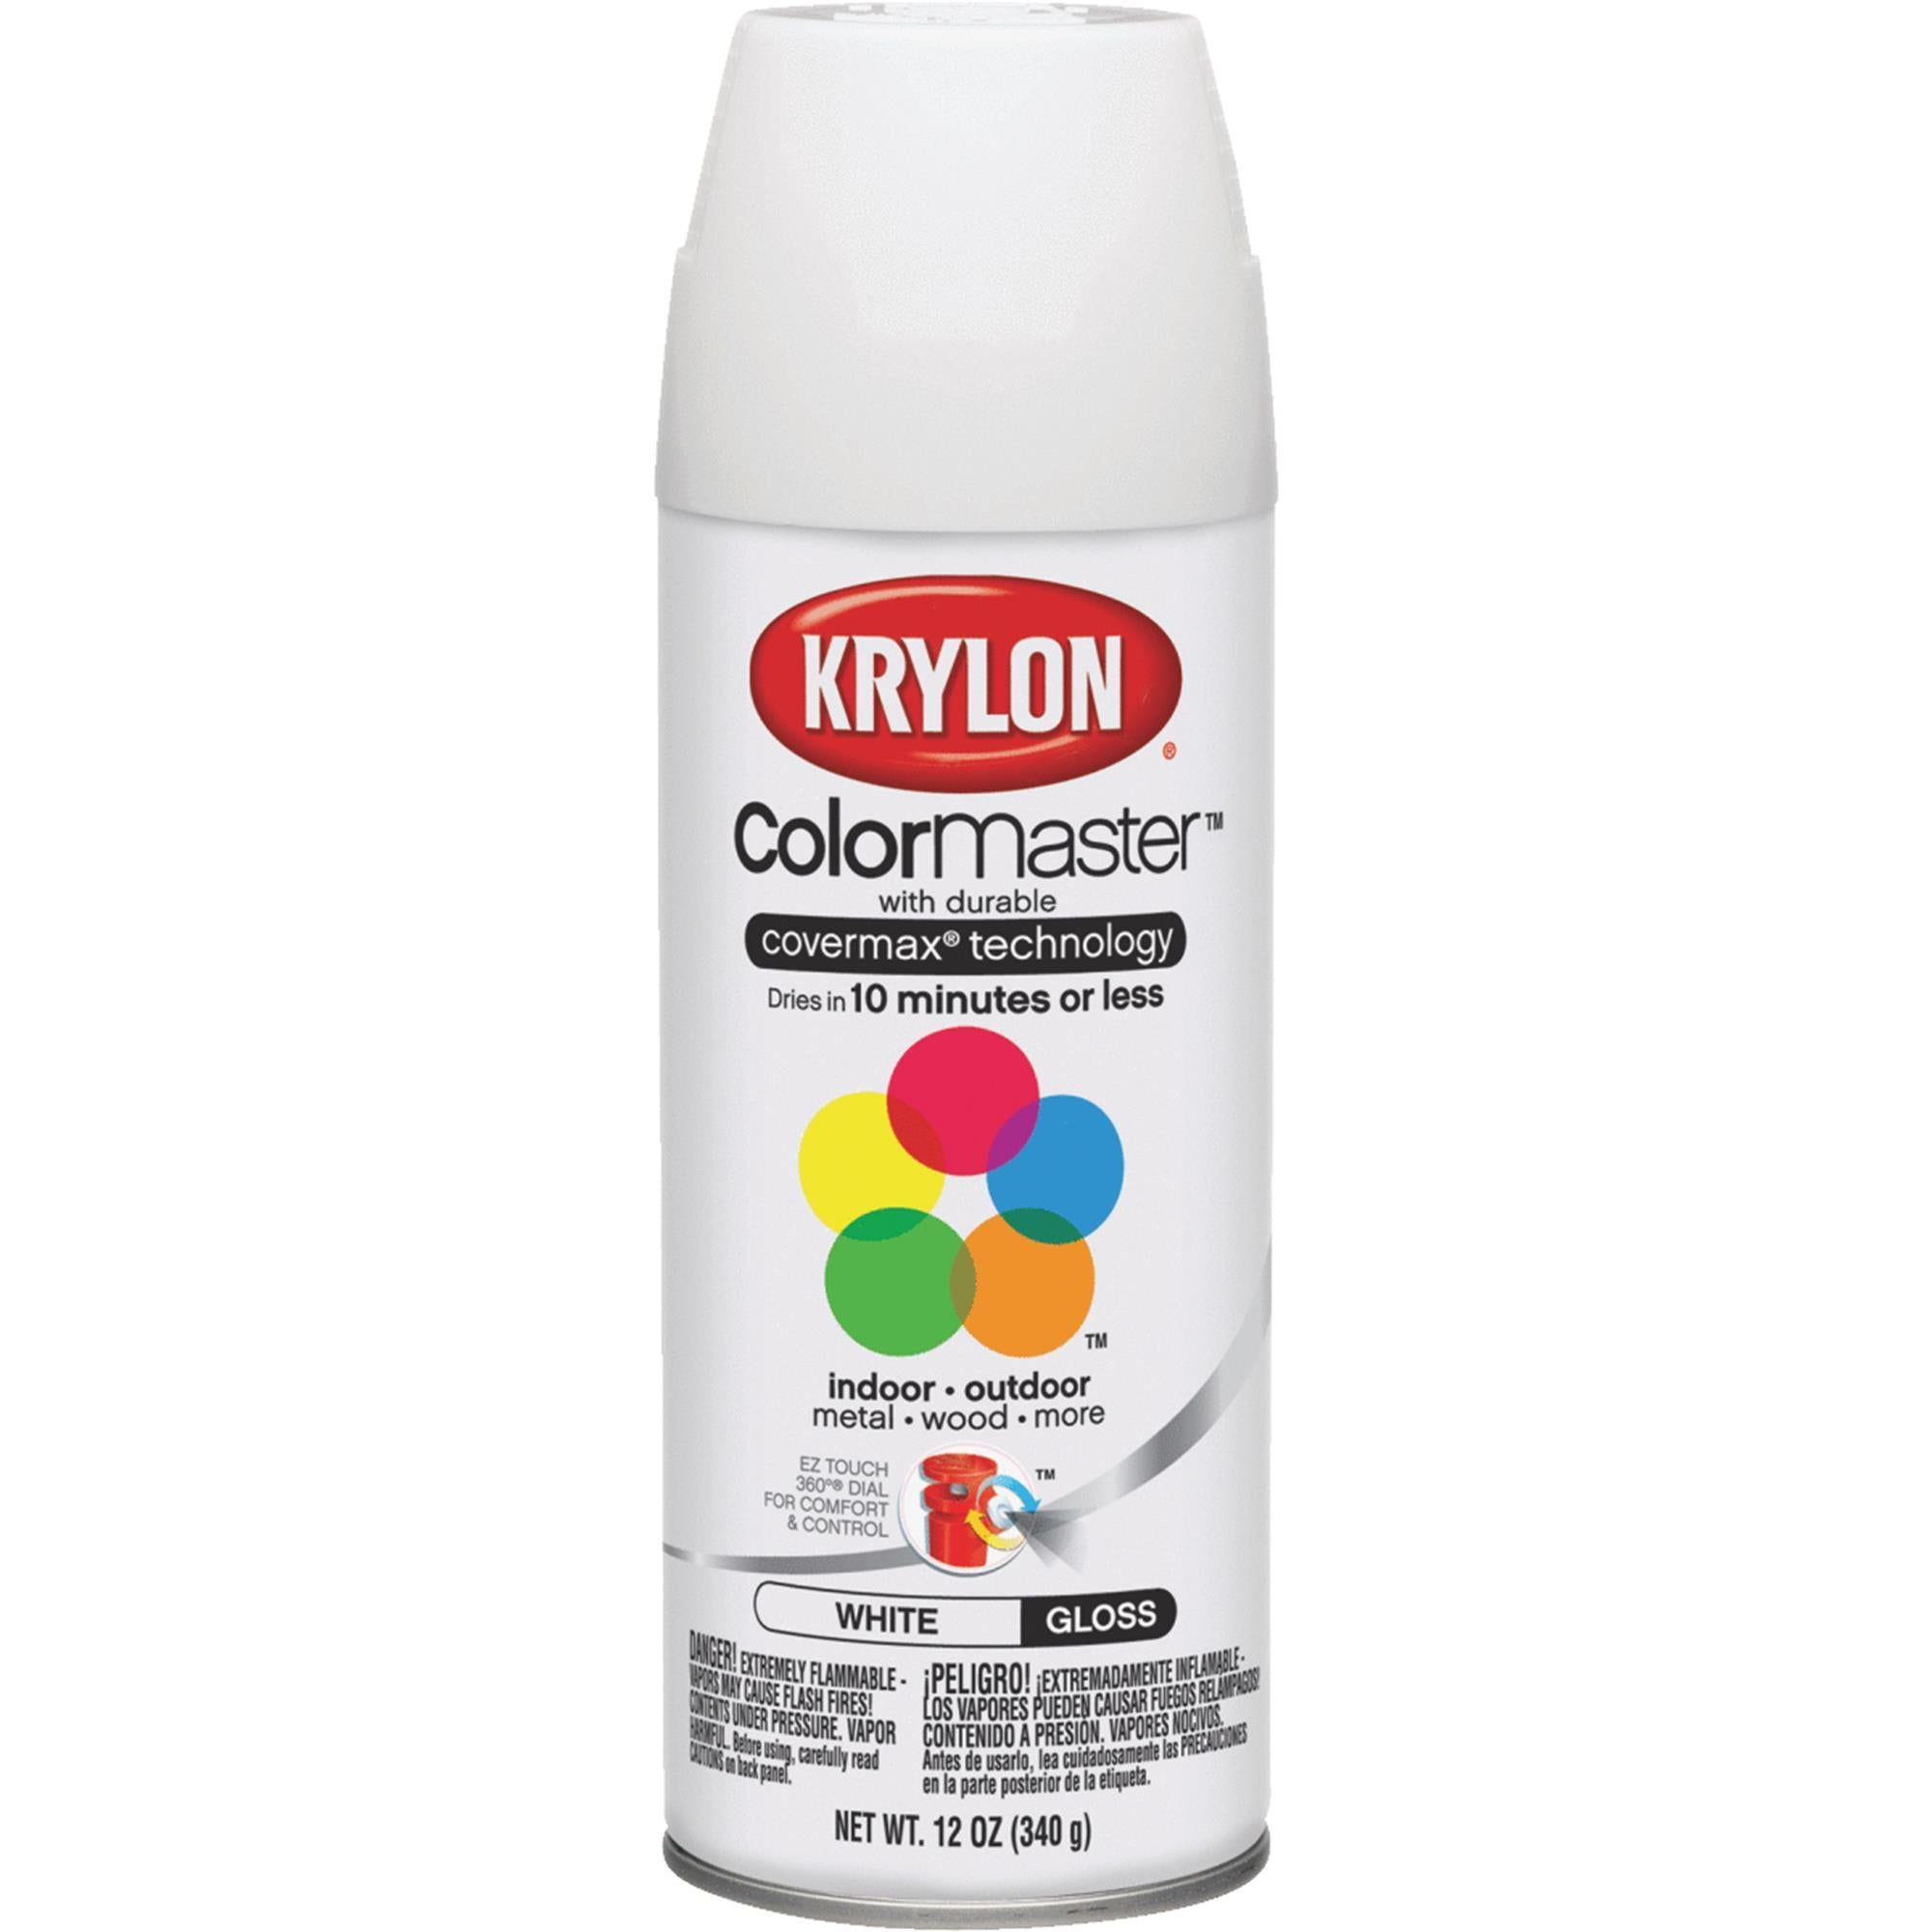 Krylon spray paint, available at Catalina Paints in CA.